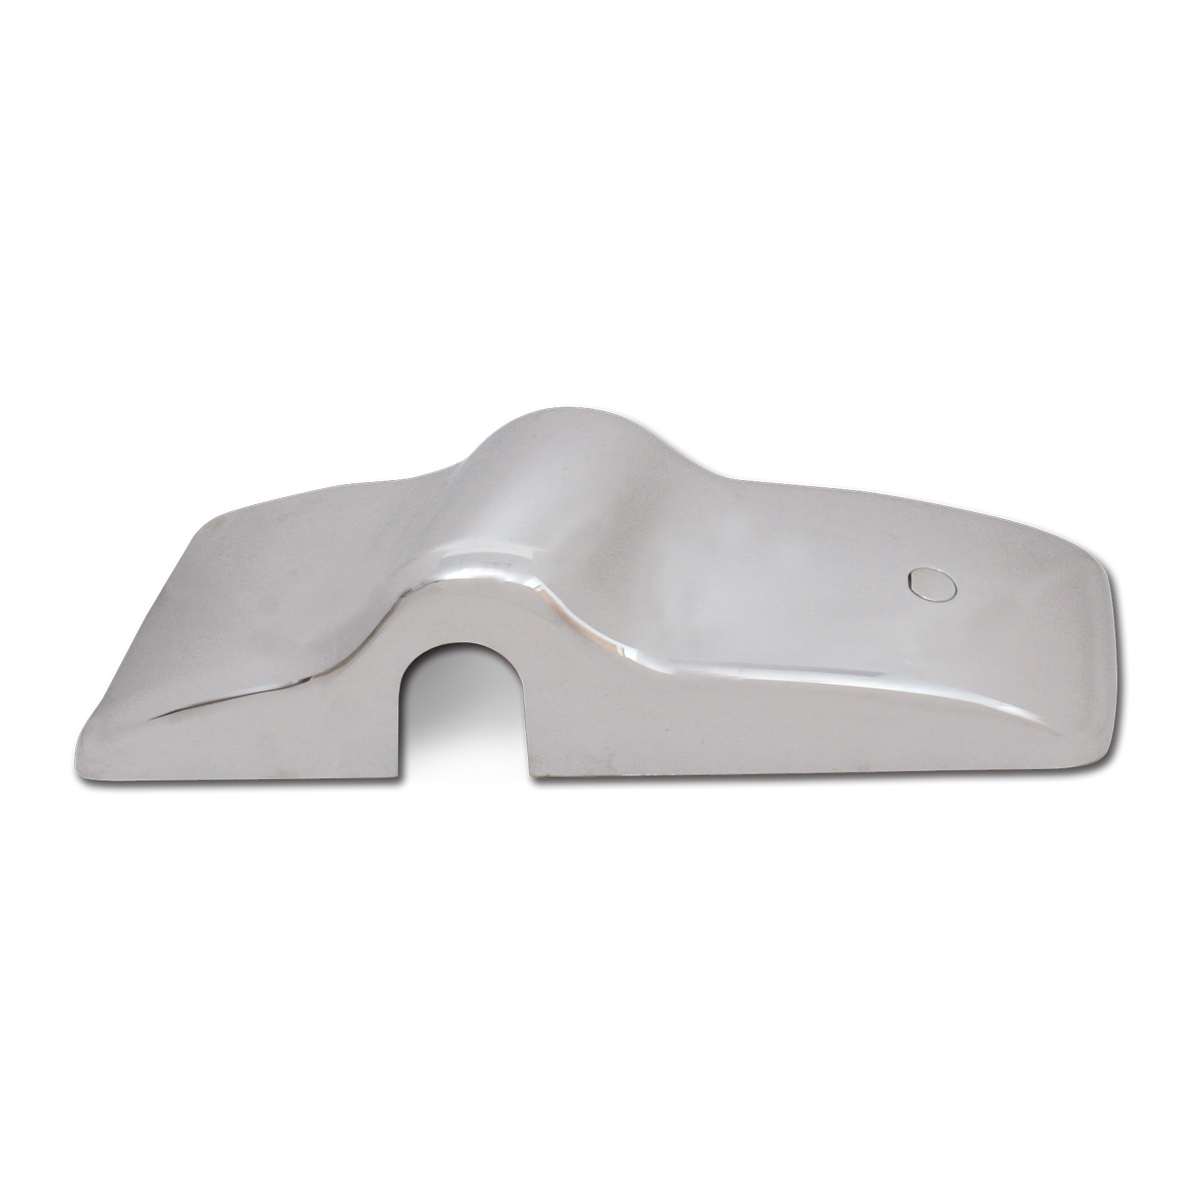 67812 Chrome Plastic Exterior Door Mirror Bracket Cover for Freightliner